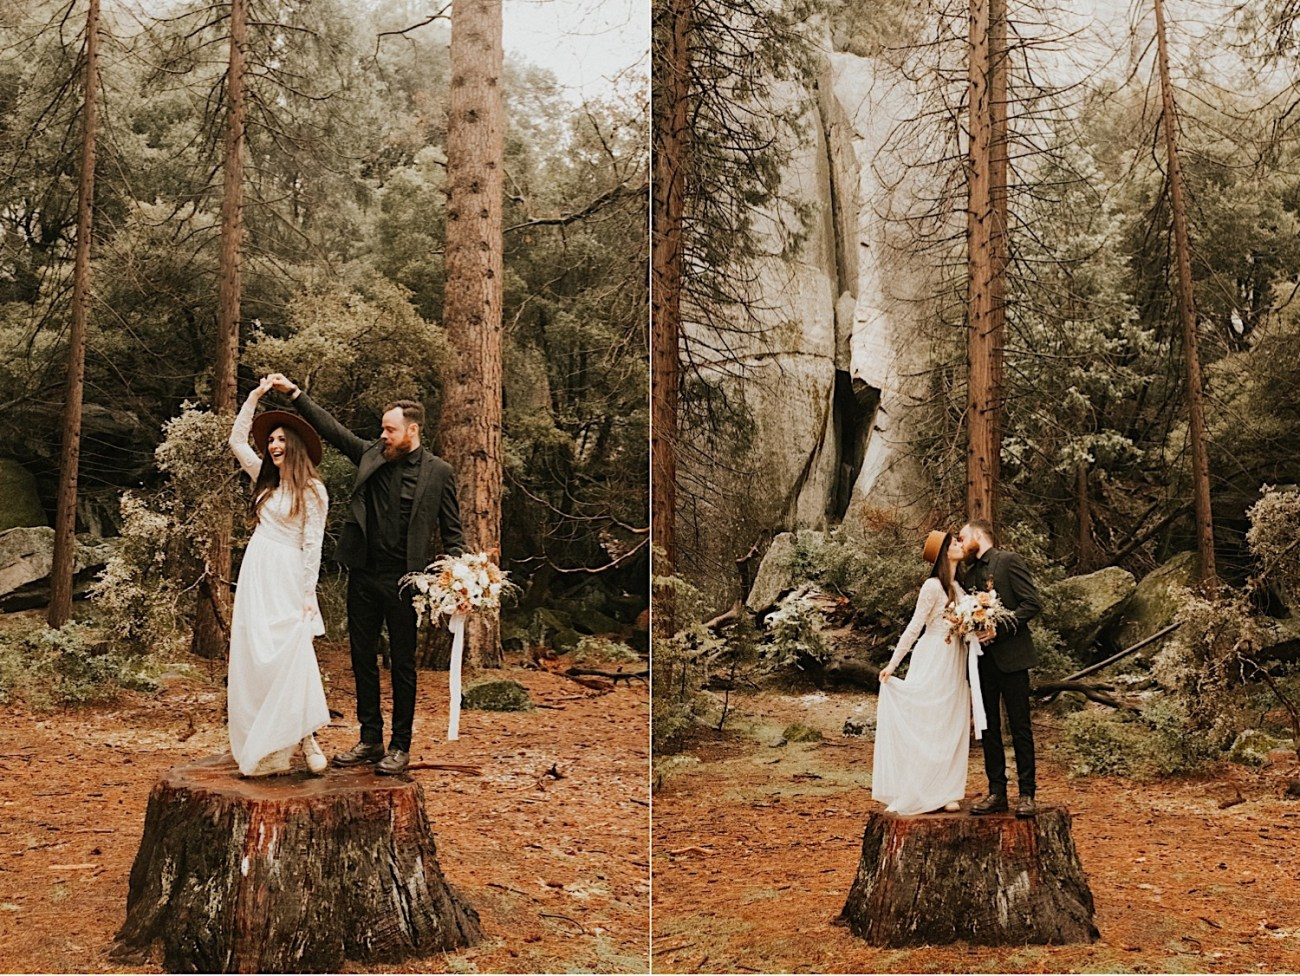 Reasons Why You Should Elope Top Reasons To Elope Elopement Photographer Yosemite National Park Elopement 003